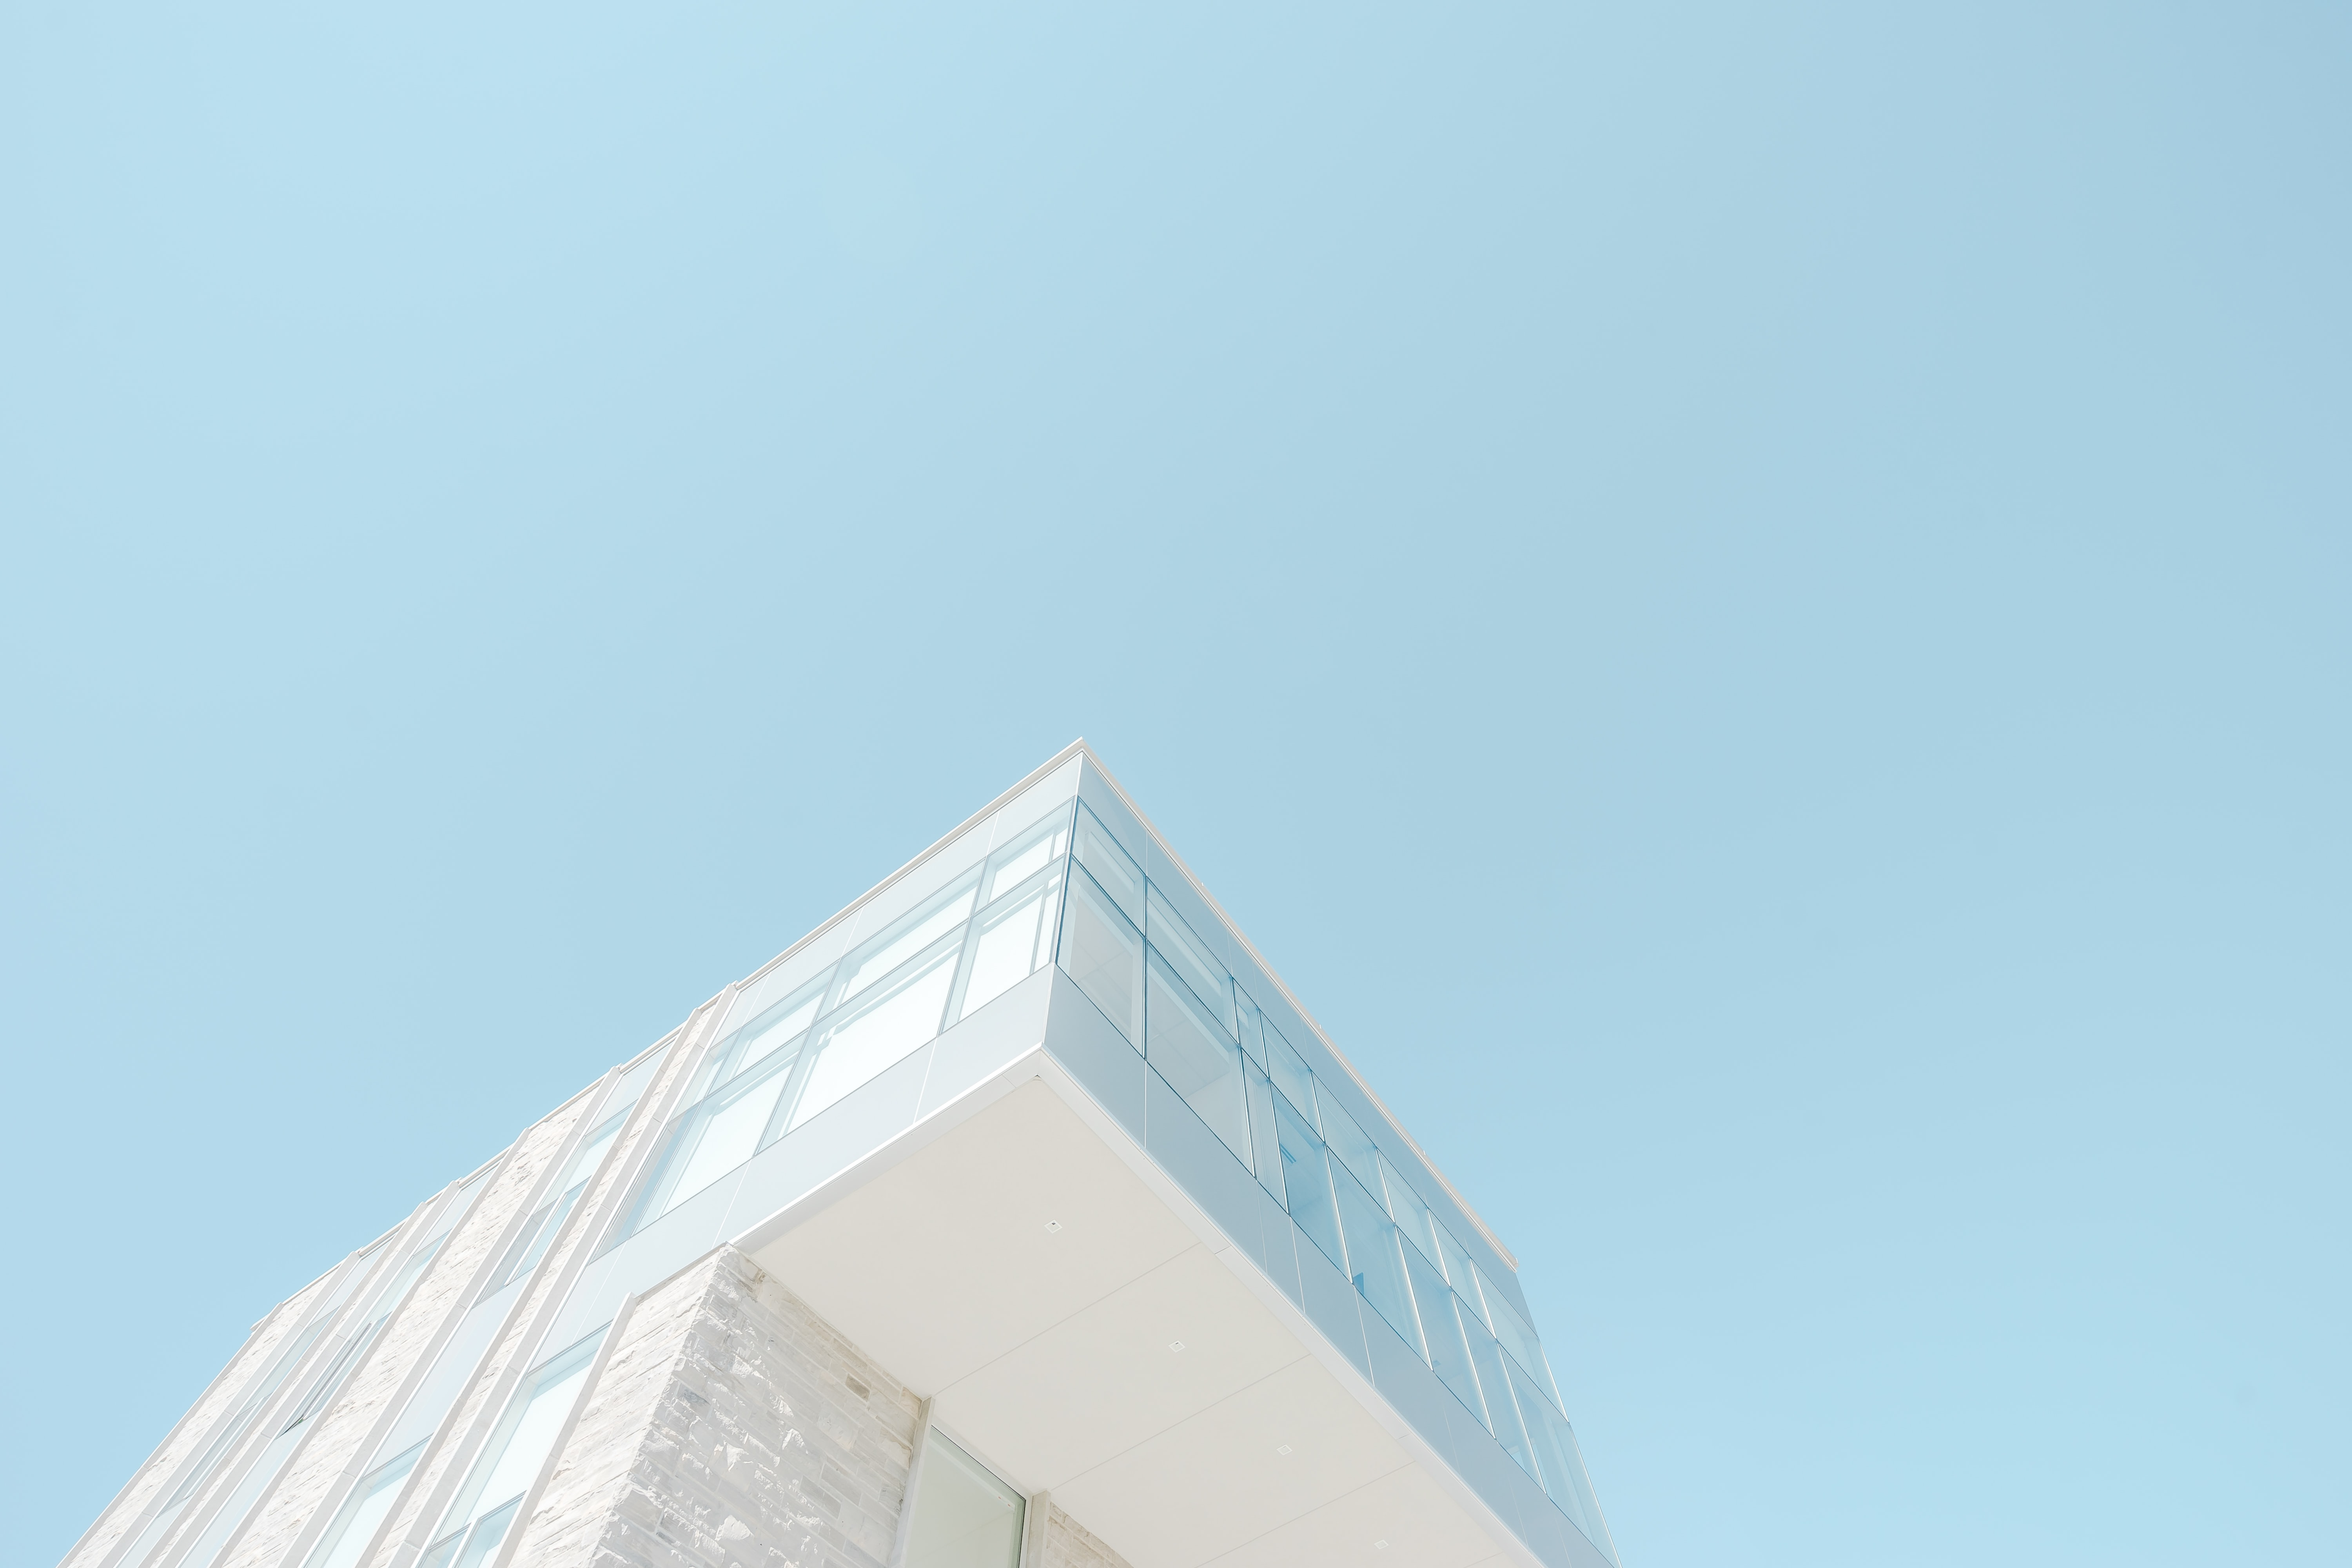 low angle photograph of white concrete building